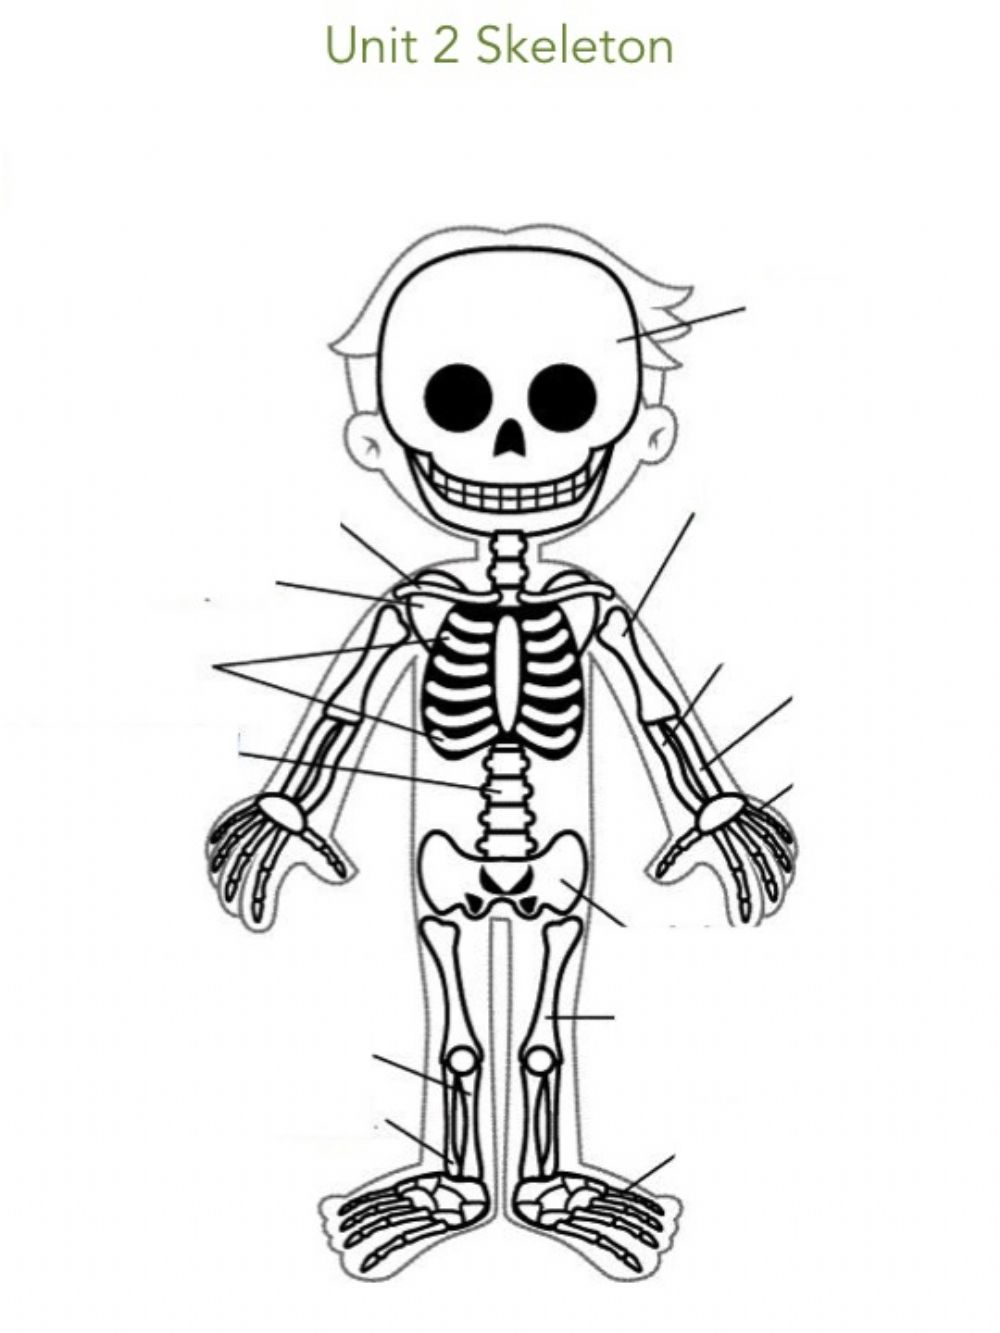 Unit 2 Skeleton Complete Interactive Worksheet Human Body Unit Science And Nature The Unit [ 1333 x 1000 Pixel ]